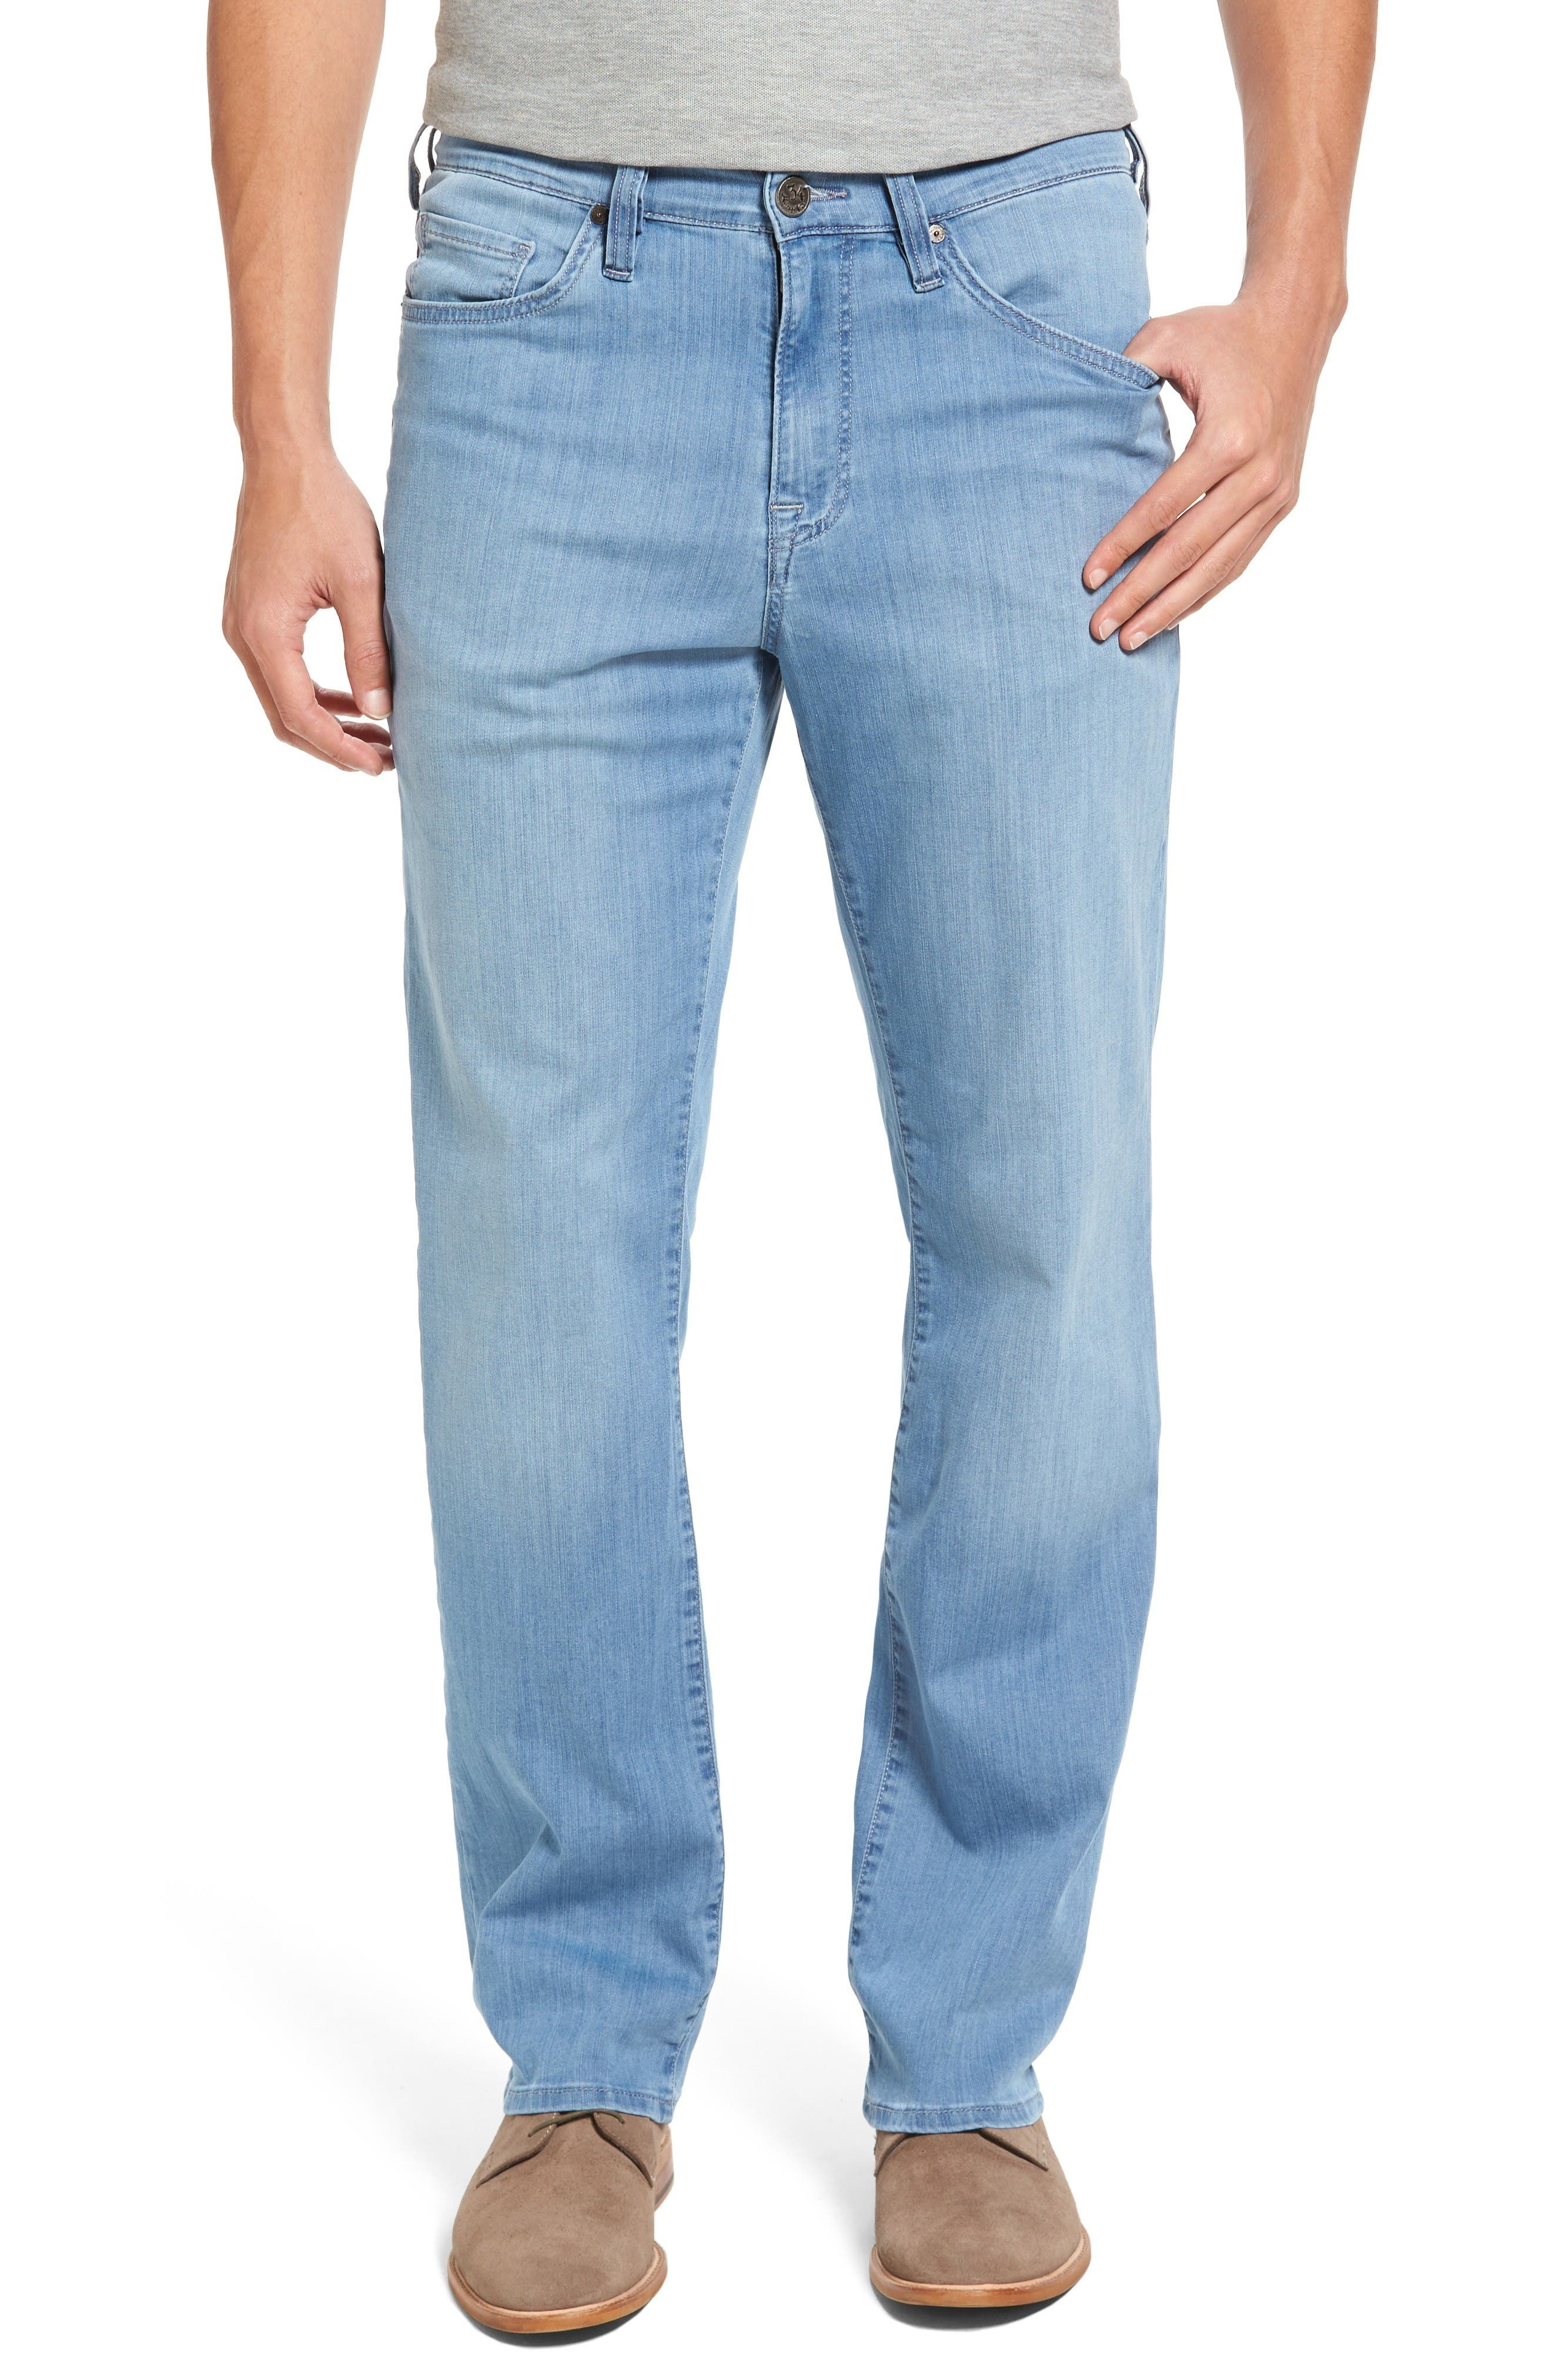 34 Heritage Charisma Relaxed Fit Jeans (Sky Summer) (Regular & Tall)